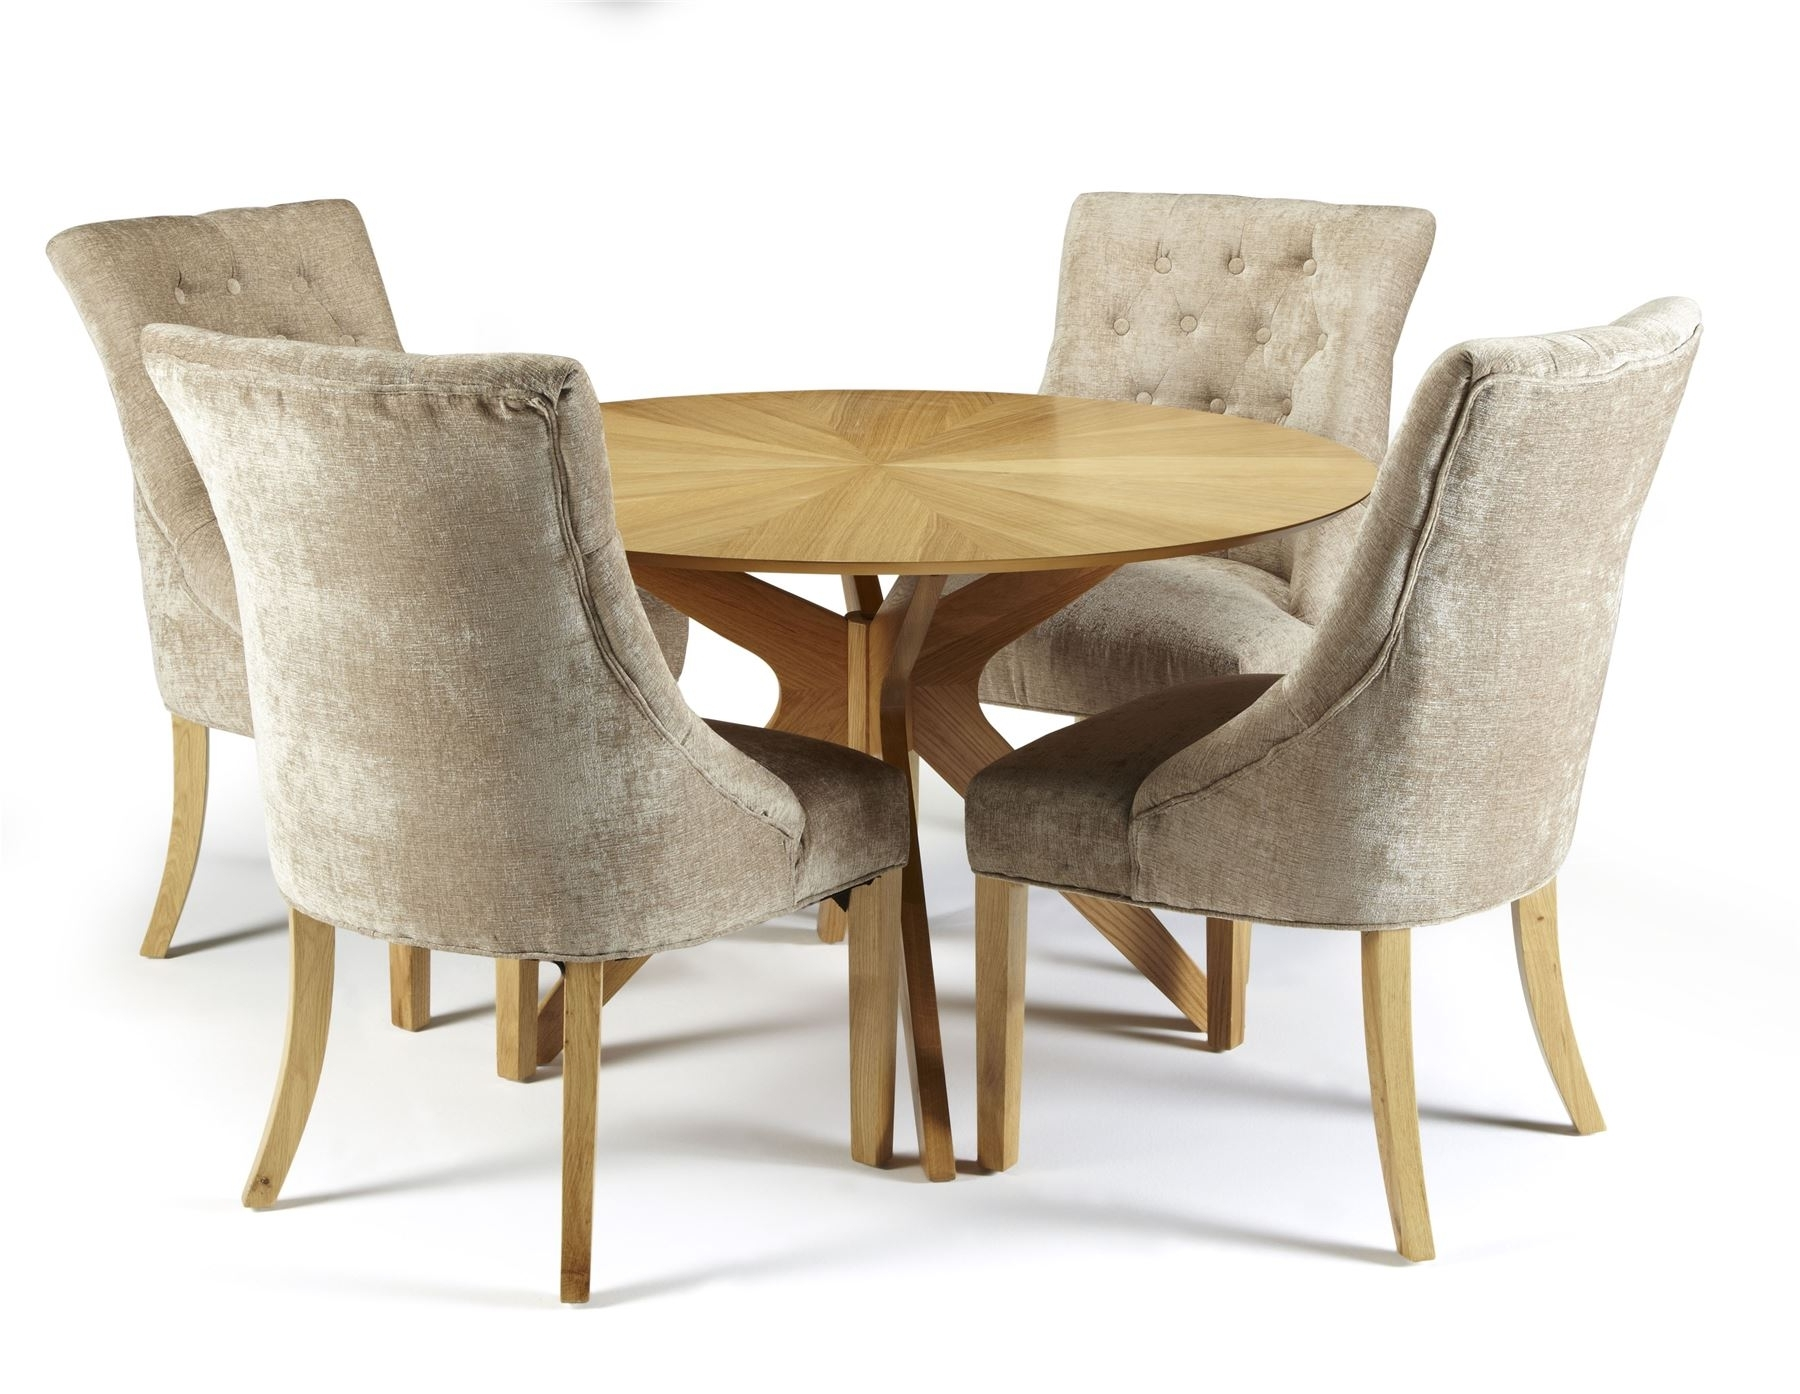 Widely Used Round Oak Dining Tables And Chairs Within Bexley Round Oak Dining Table And 4X Hampton Mink Fabric Dining (View 11 of 25)